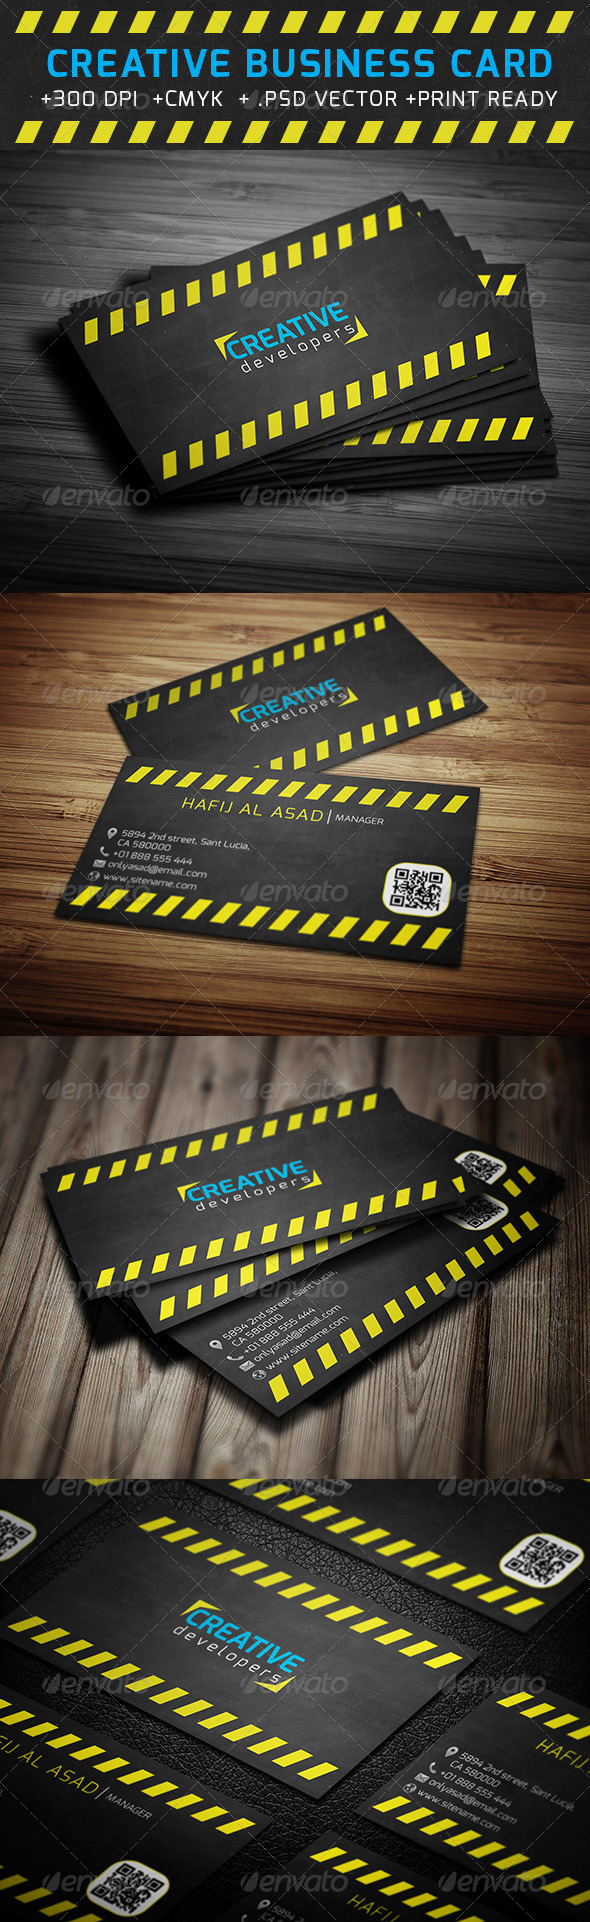 GraphicRiver Creative Business Card 6294232